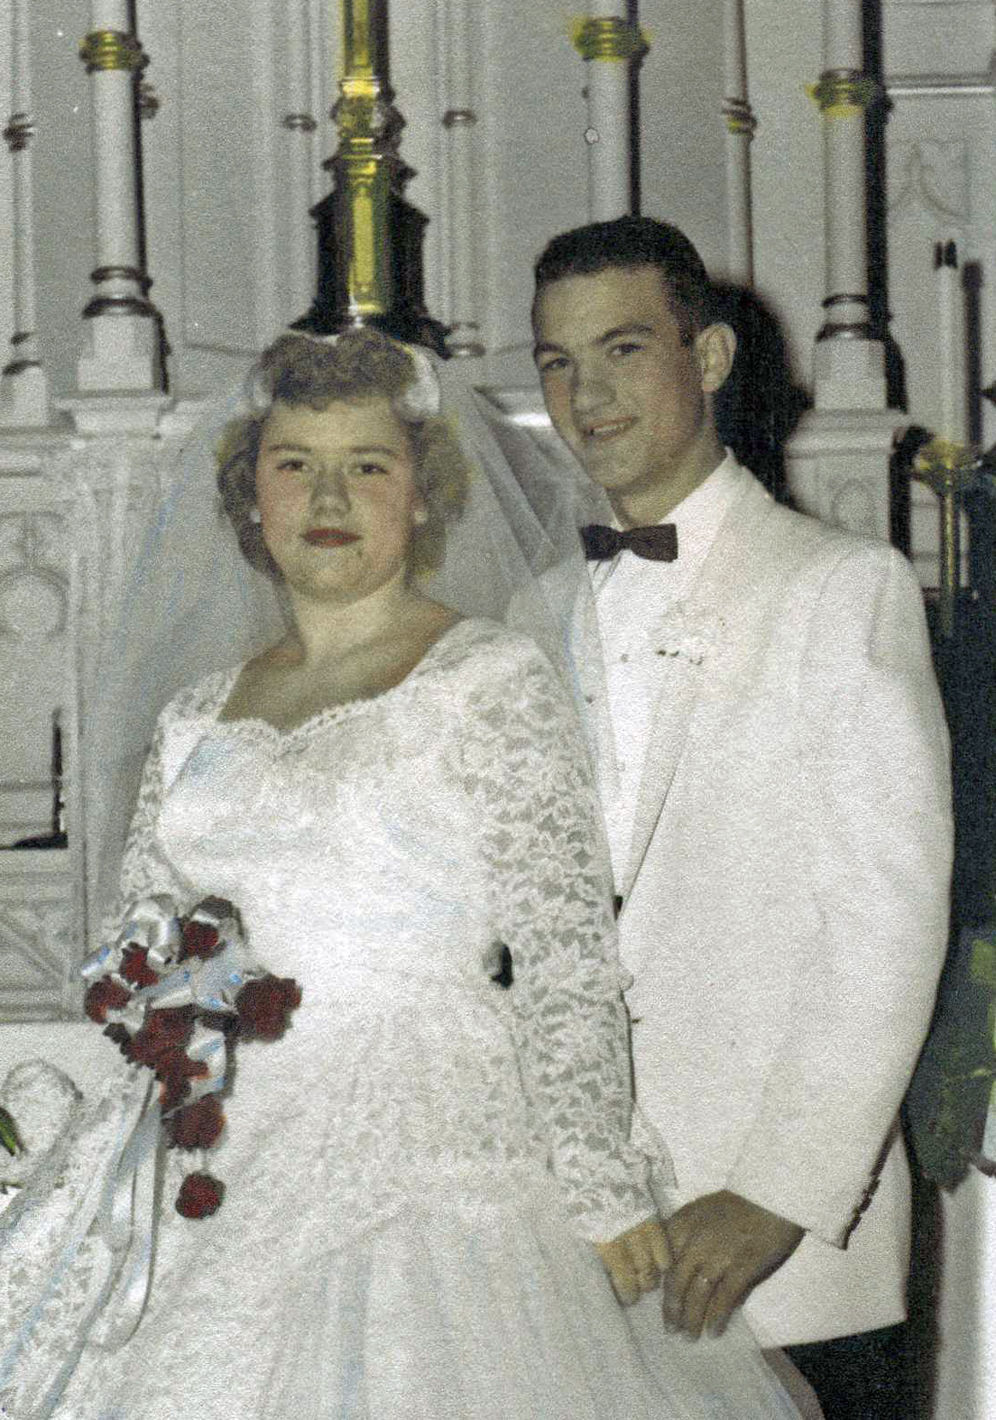 Happy 60th wedding anniversary, John and Arlene (Korell) Delisi